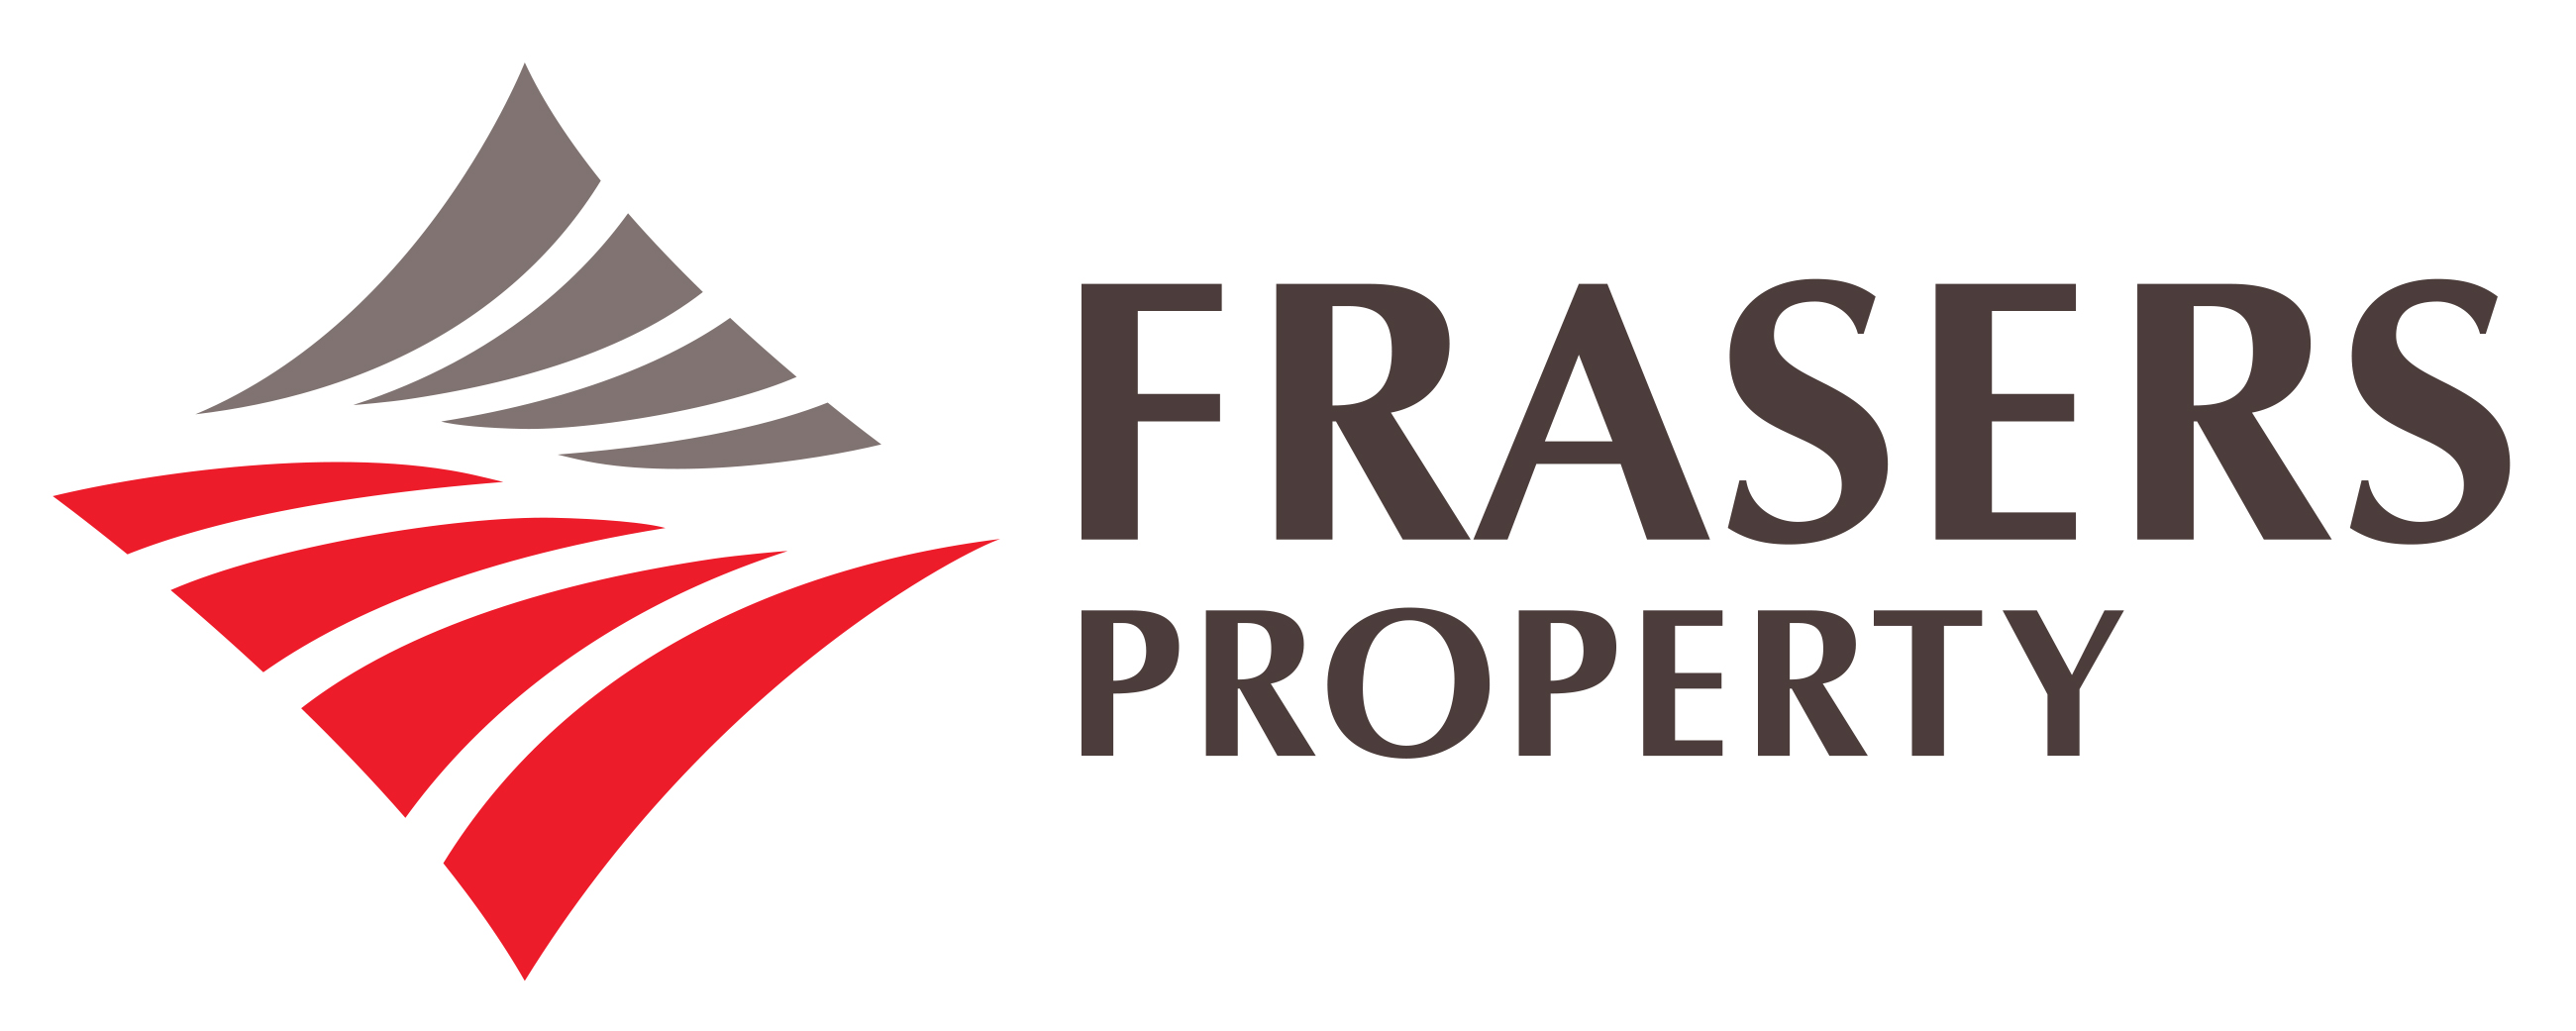 Frasers Property - Wikipedia